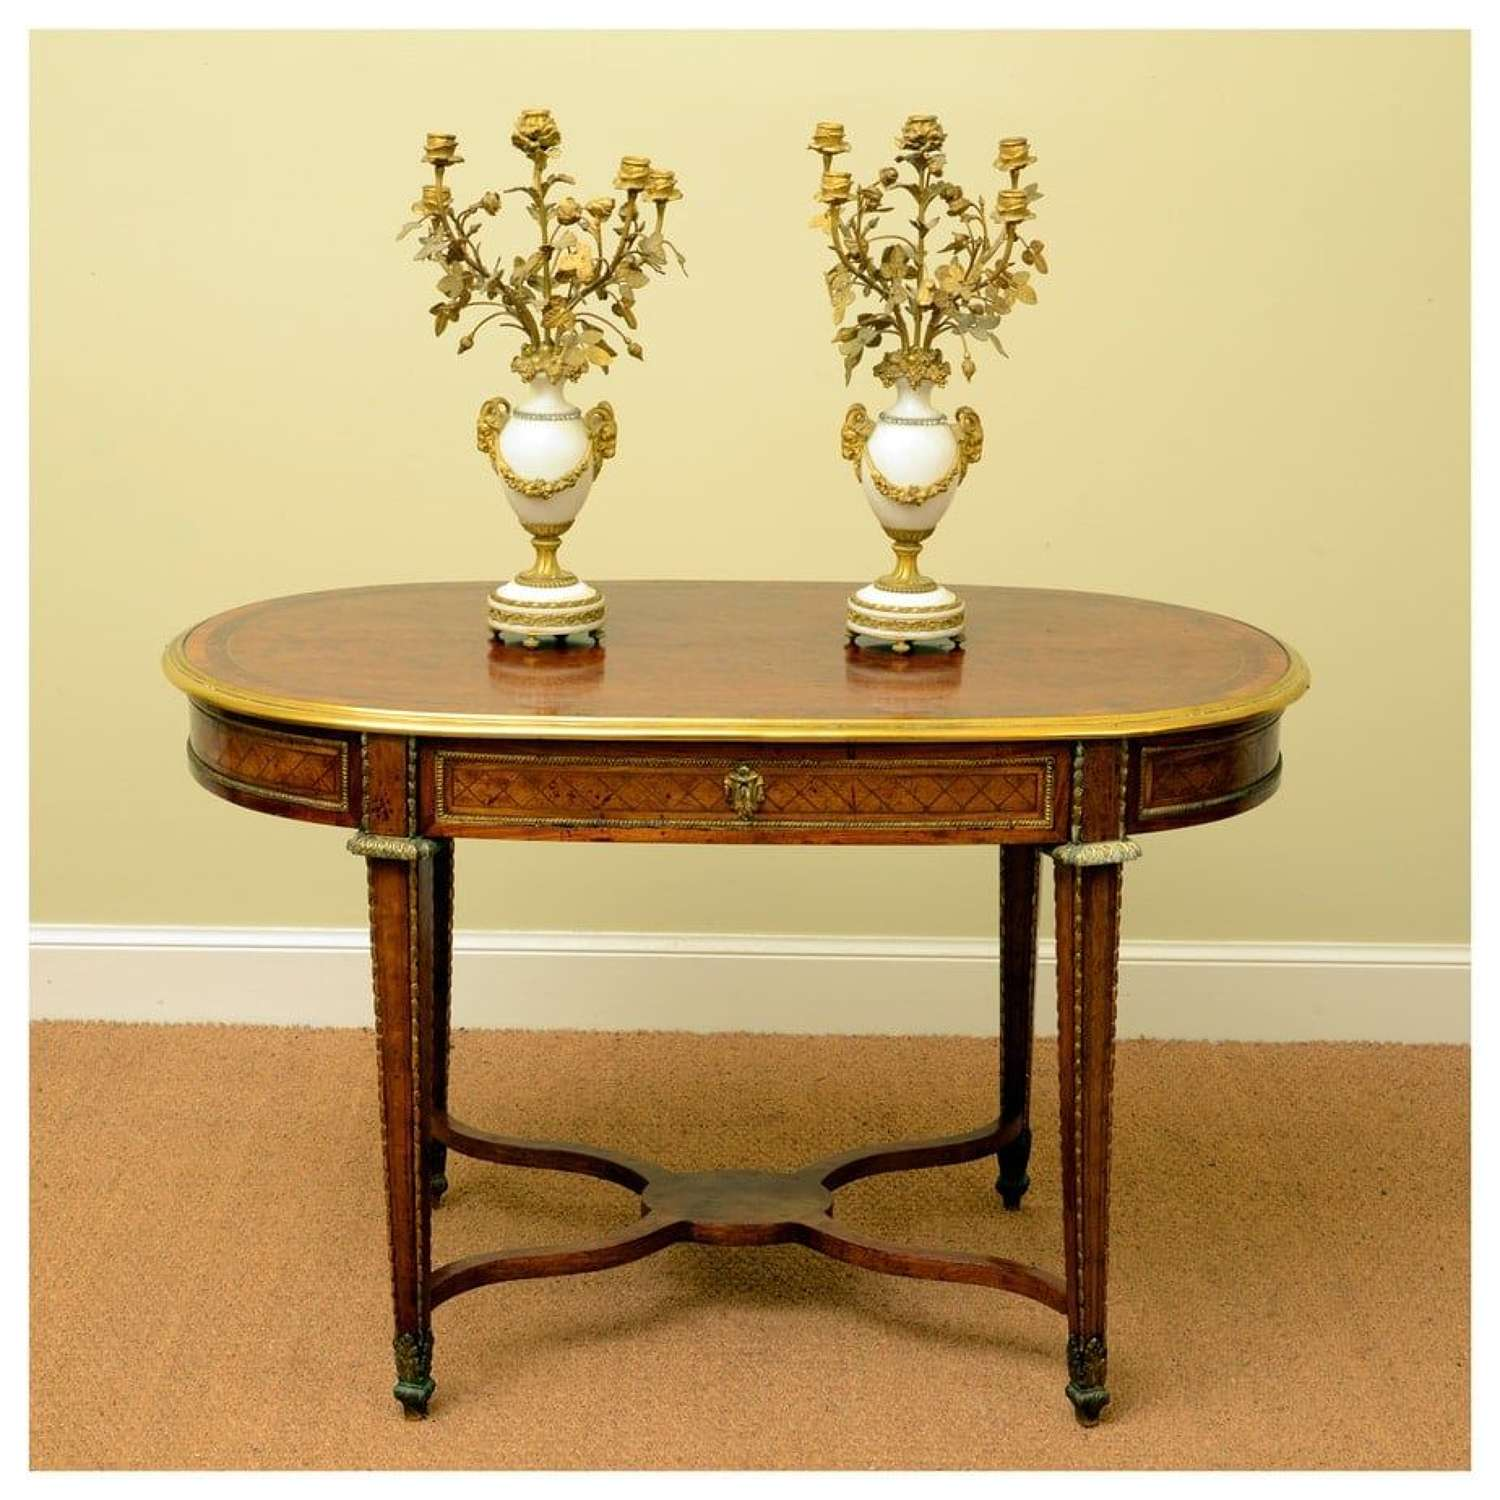 Continental centre table in the Louis XVI style